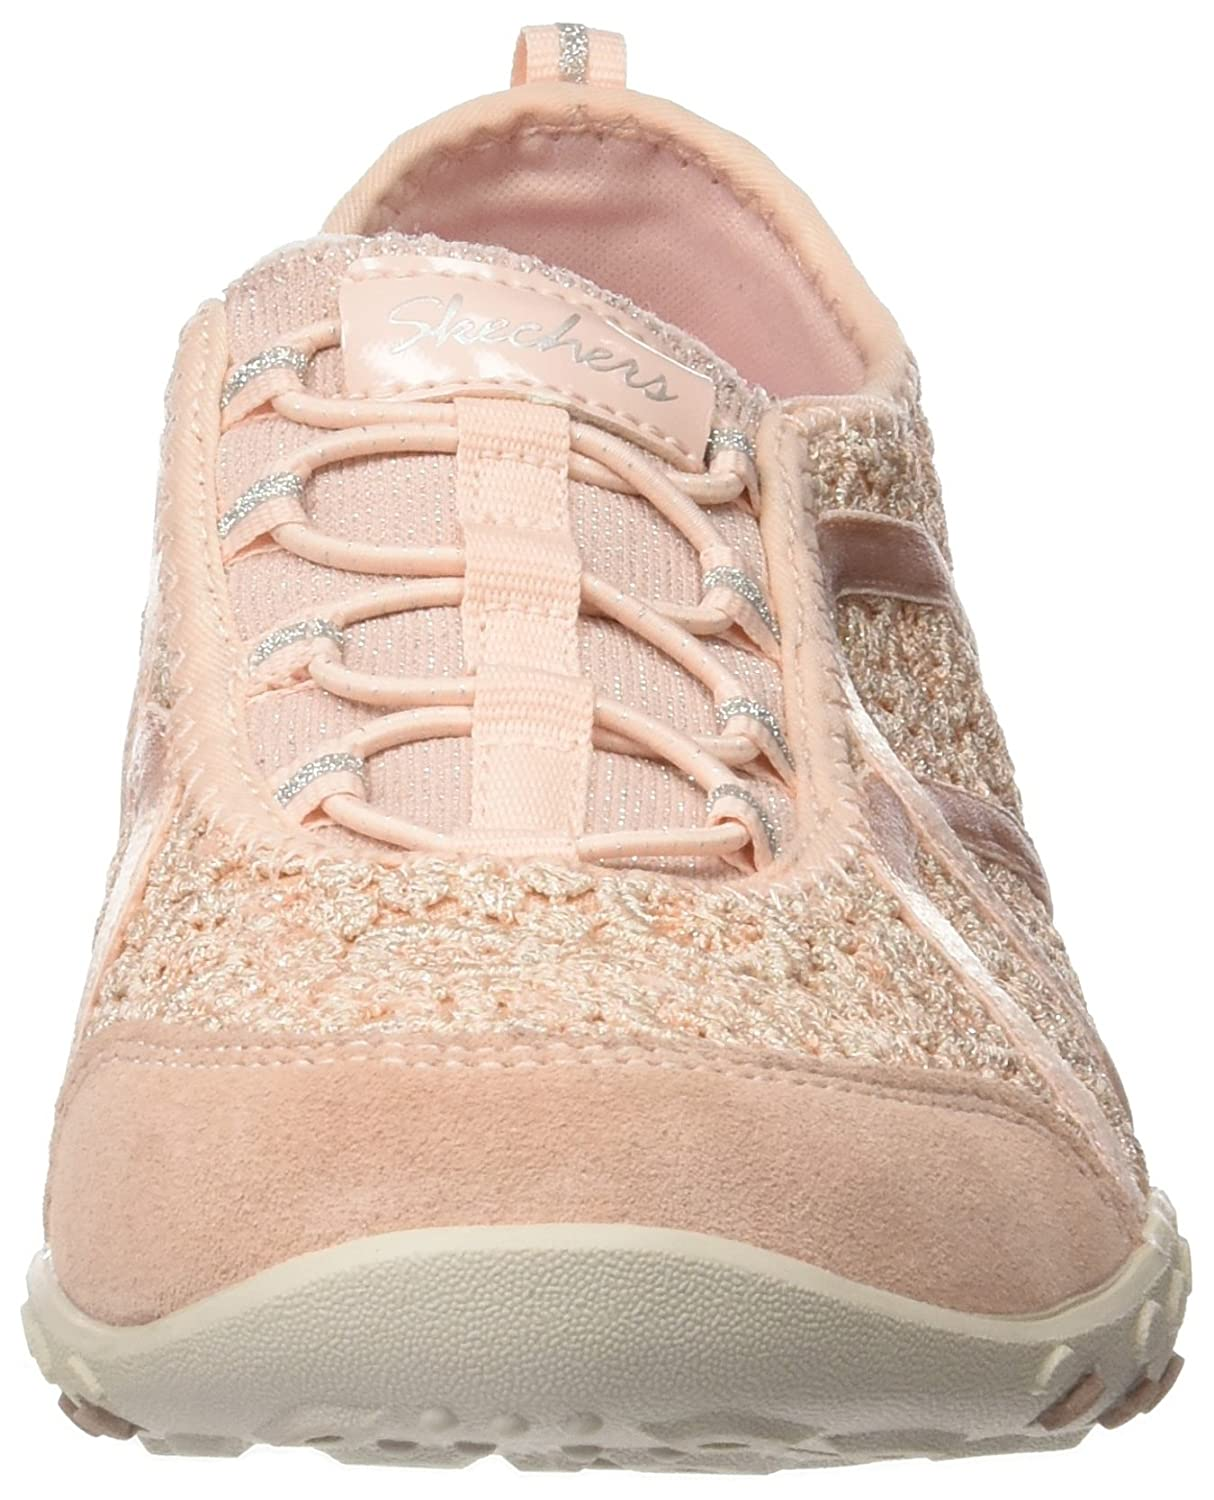 Breathe-Easy - Sweet Darling, Zapatillas para Mujer, Beige (Natural/Silver), 41 EU Skechers